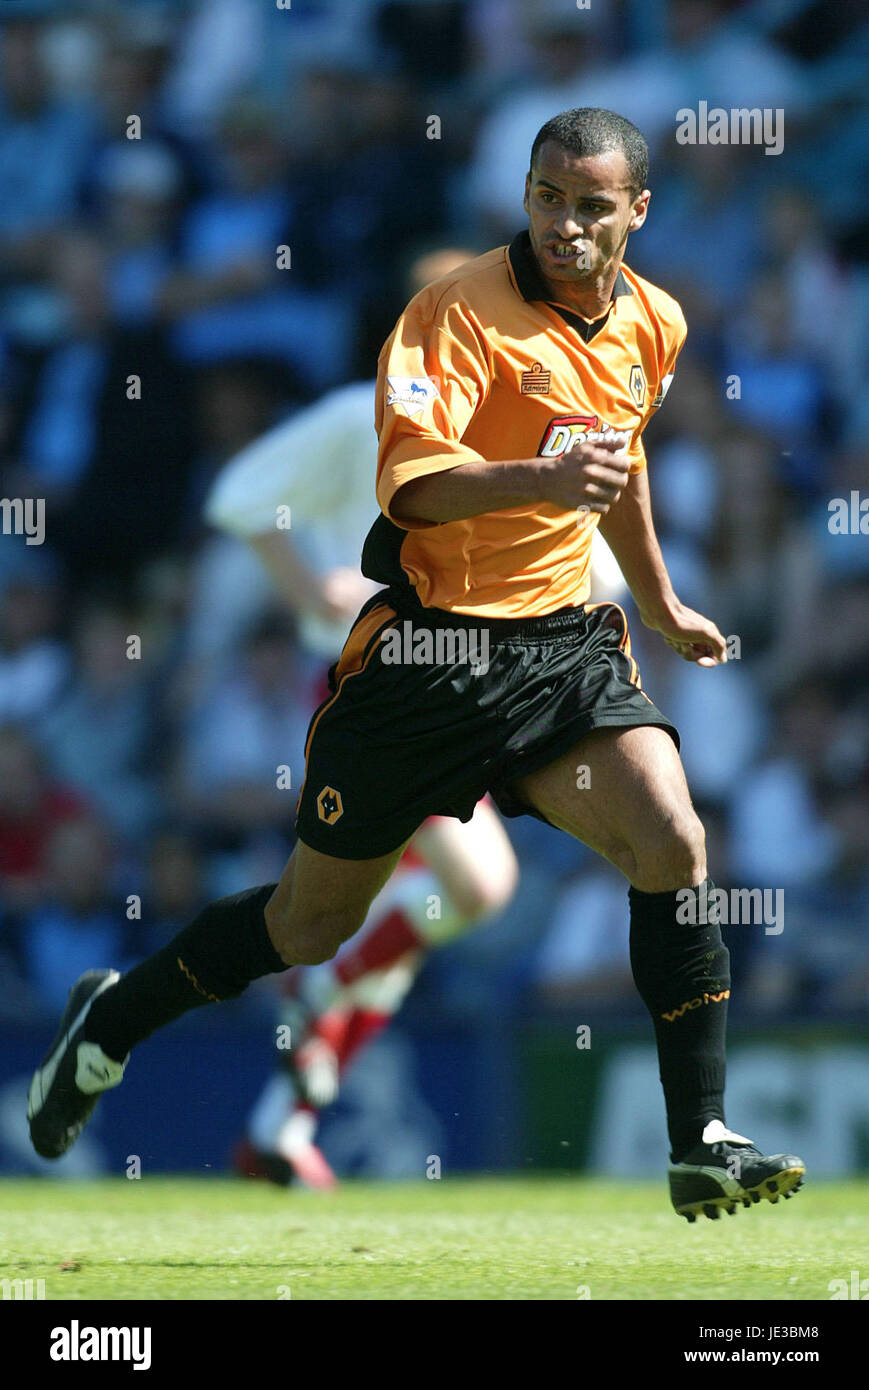 SILAS WOLVERHAMPTON WANDERERS FC HIGHFIELD ROAD COVENTRY ENGLAND 02 August 2003 - Stock Image